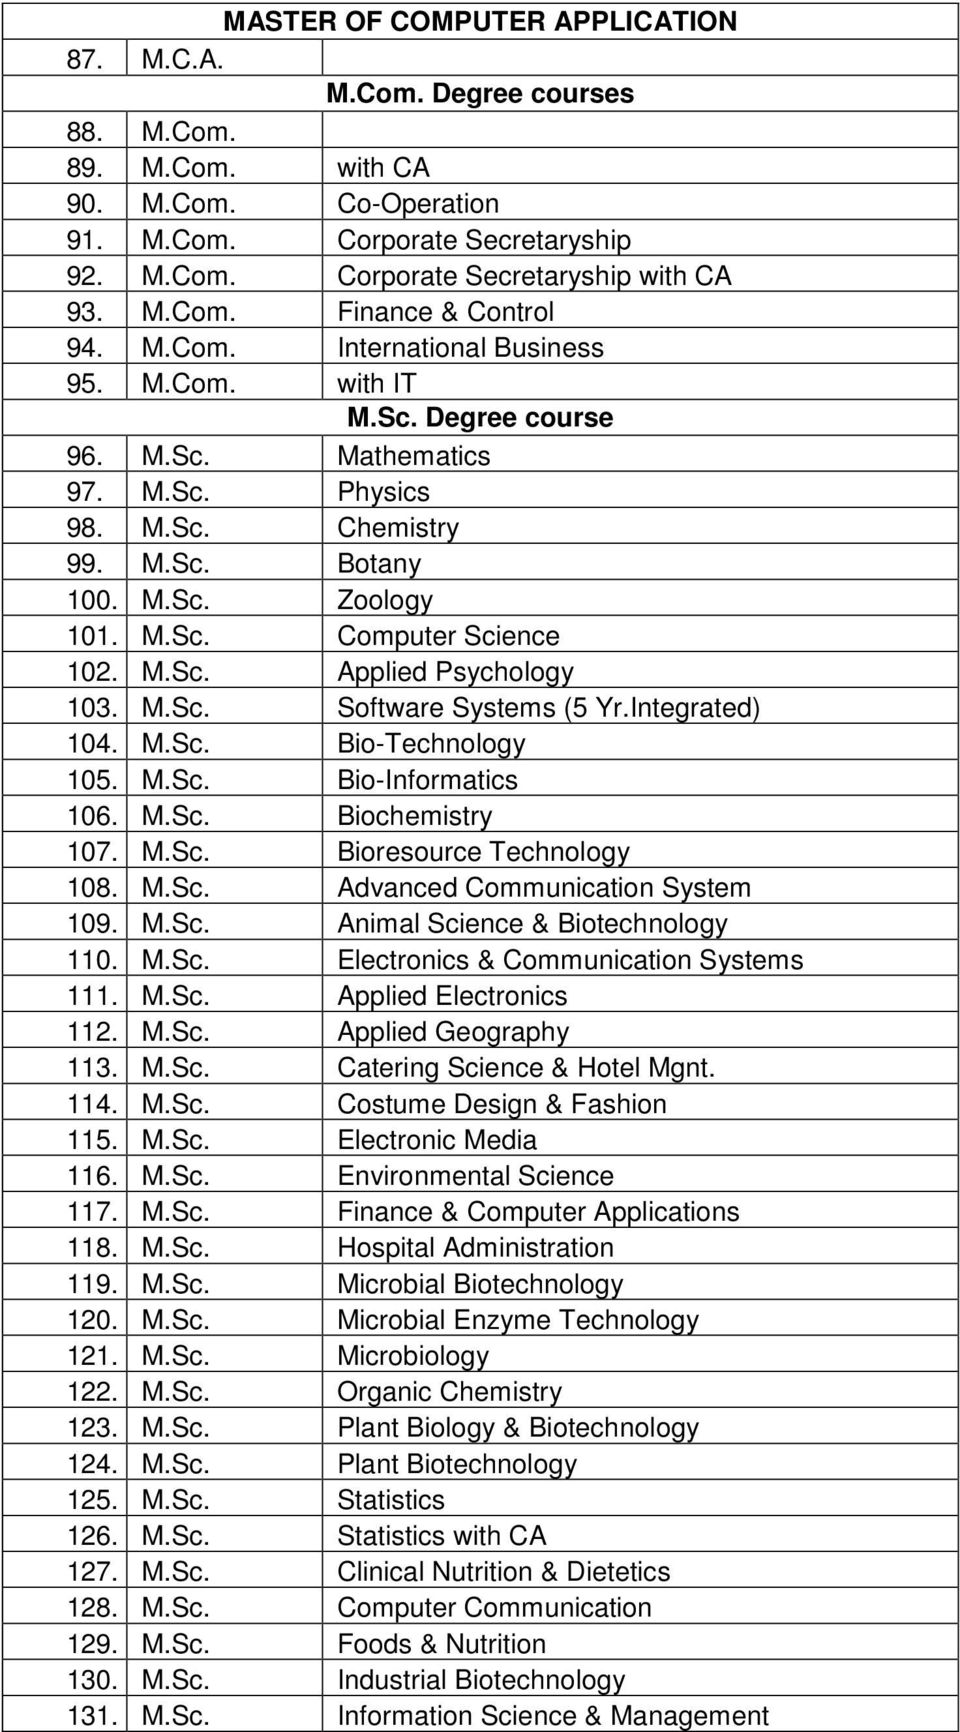 M.Sc. Computer Science 102. M.Sc. Applied Psychology 103. M.Sc. Software Systems (5 Yr.Integrated) 104. M.Sc. Bio-Technology 105. M.Sc. Bio-Informatics 106. M.Sc. Biochemistry 107. M.Sc. Bioresource Technology 108.